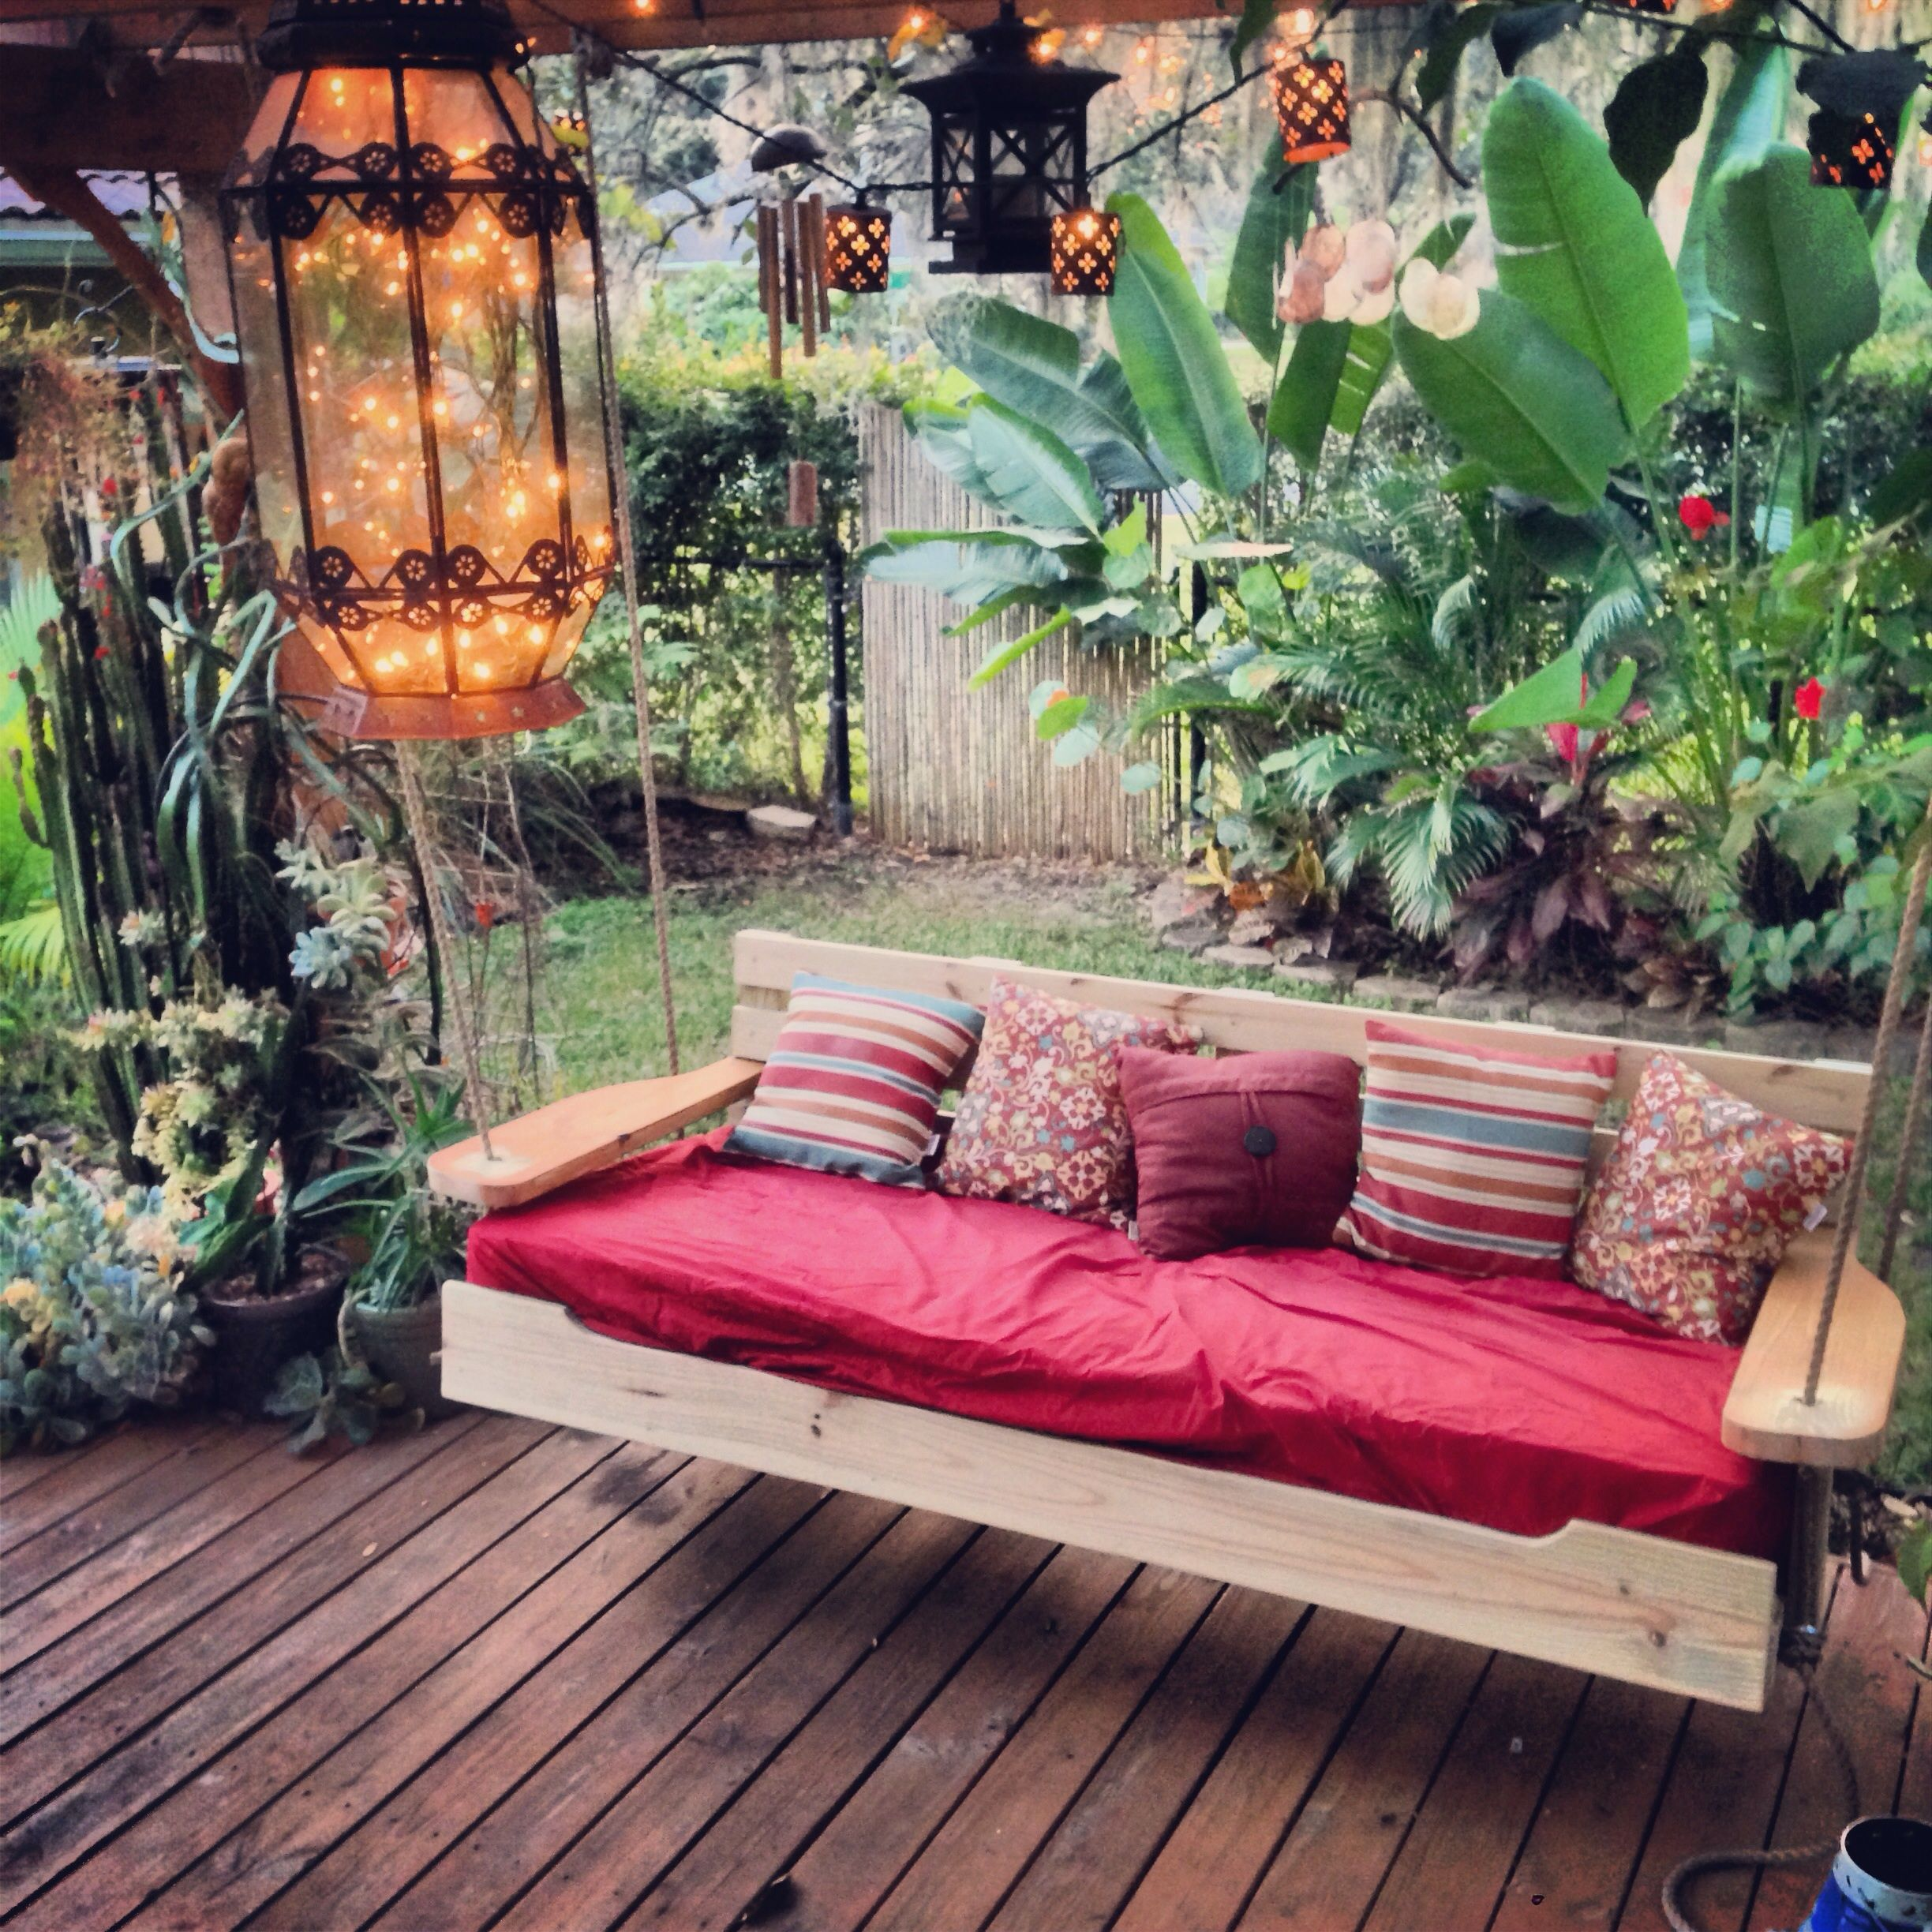 Porch swing bed do it yourself home projects from ana white for porch swing bed do it yourself home projects from ana white solutioingenieria Images